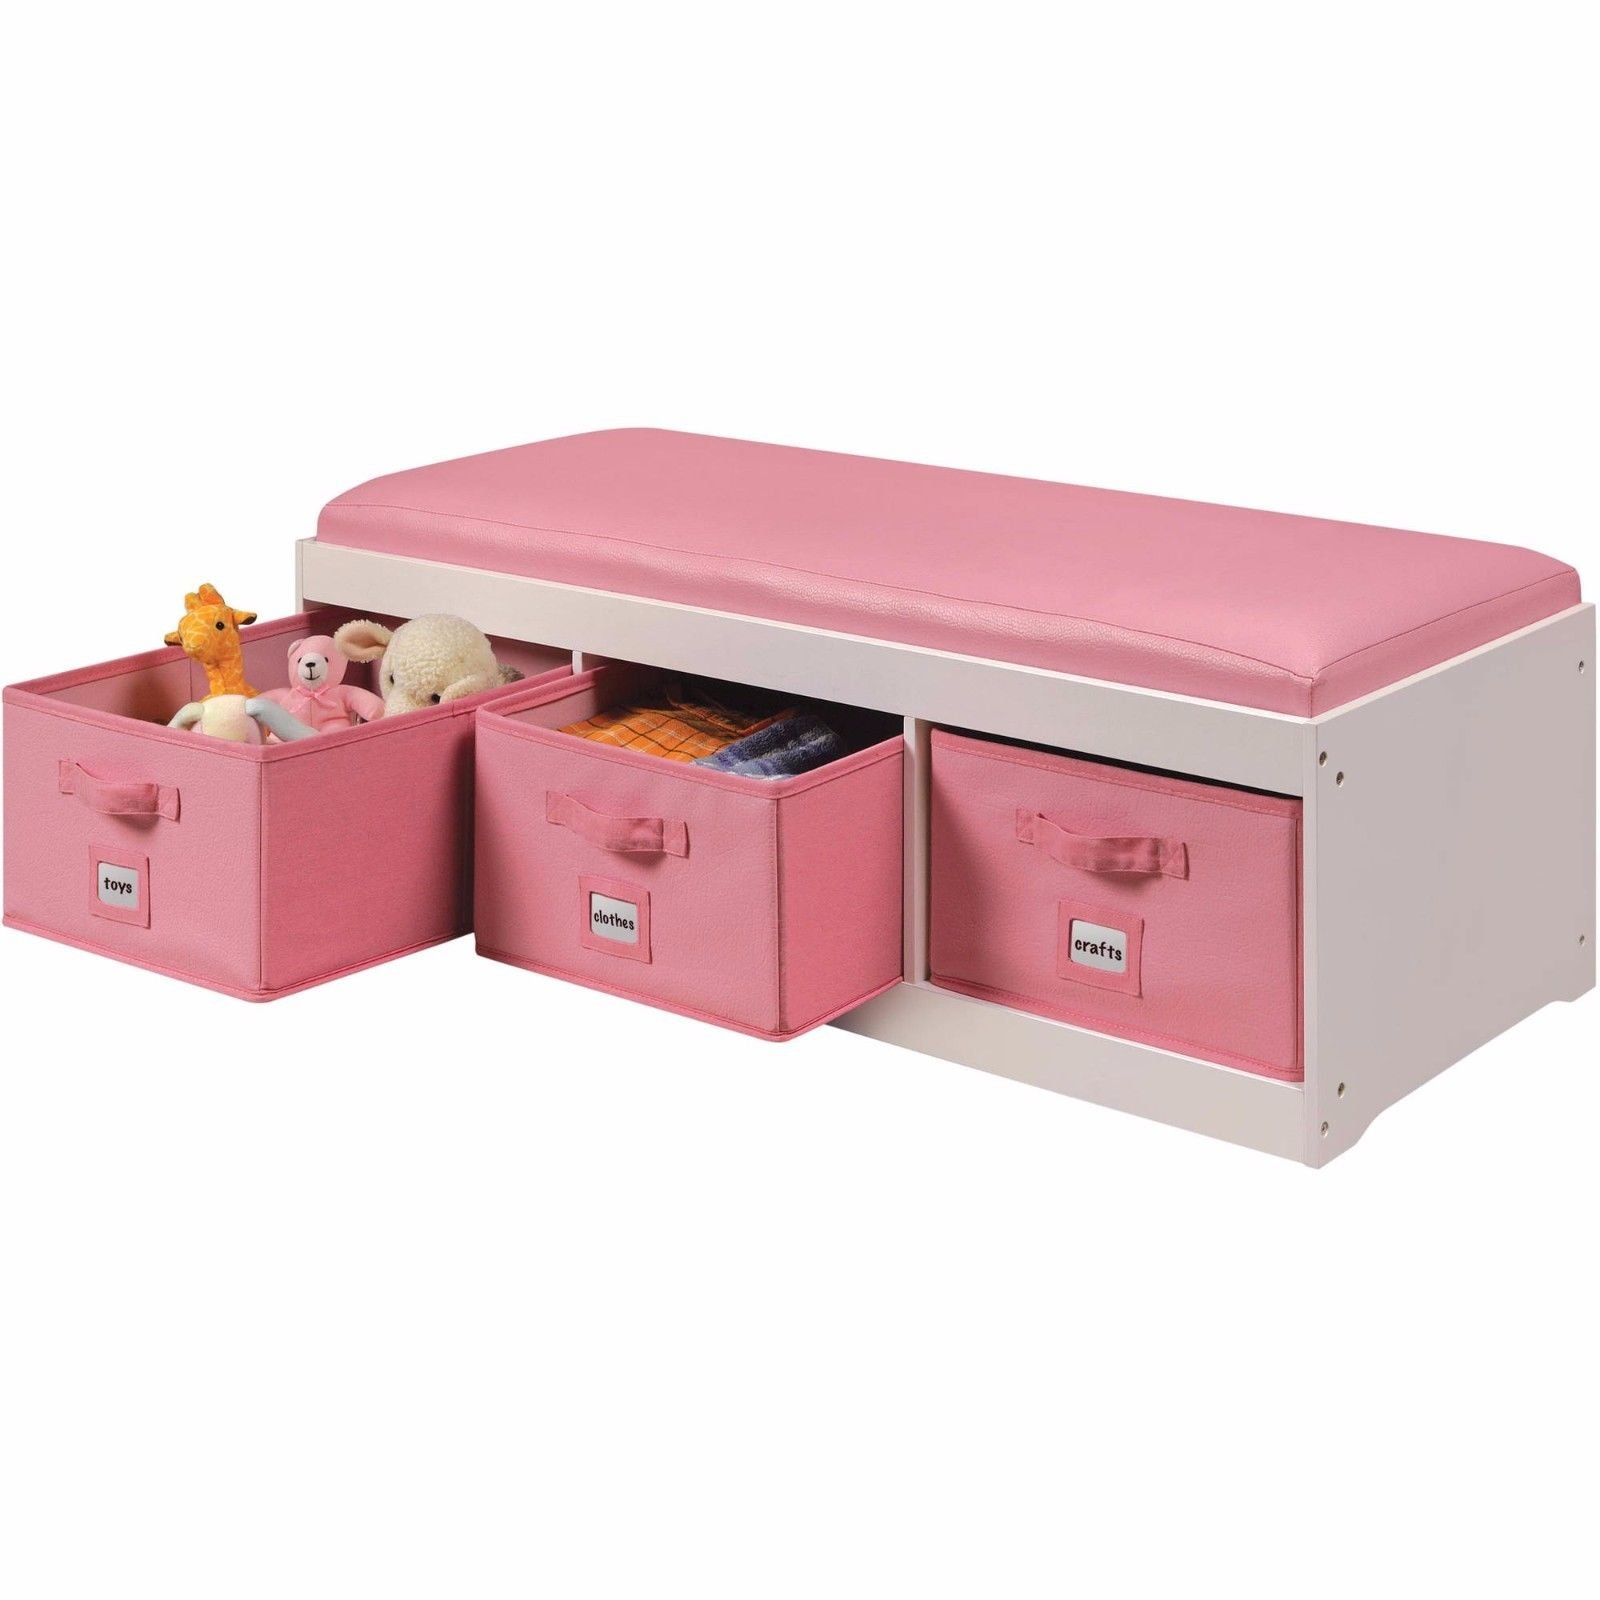 Storage Bench Seat Drawer Basket Organizer Faux Leather Cushion 3 Bins, Pink